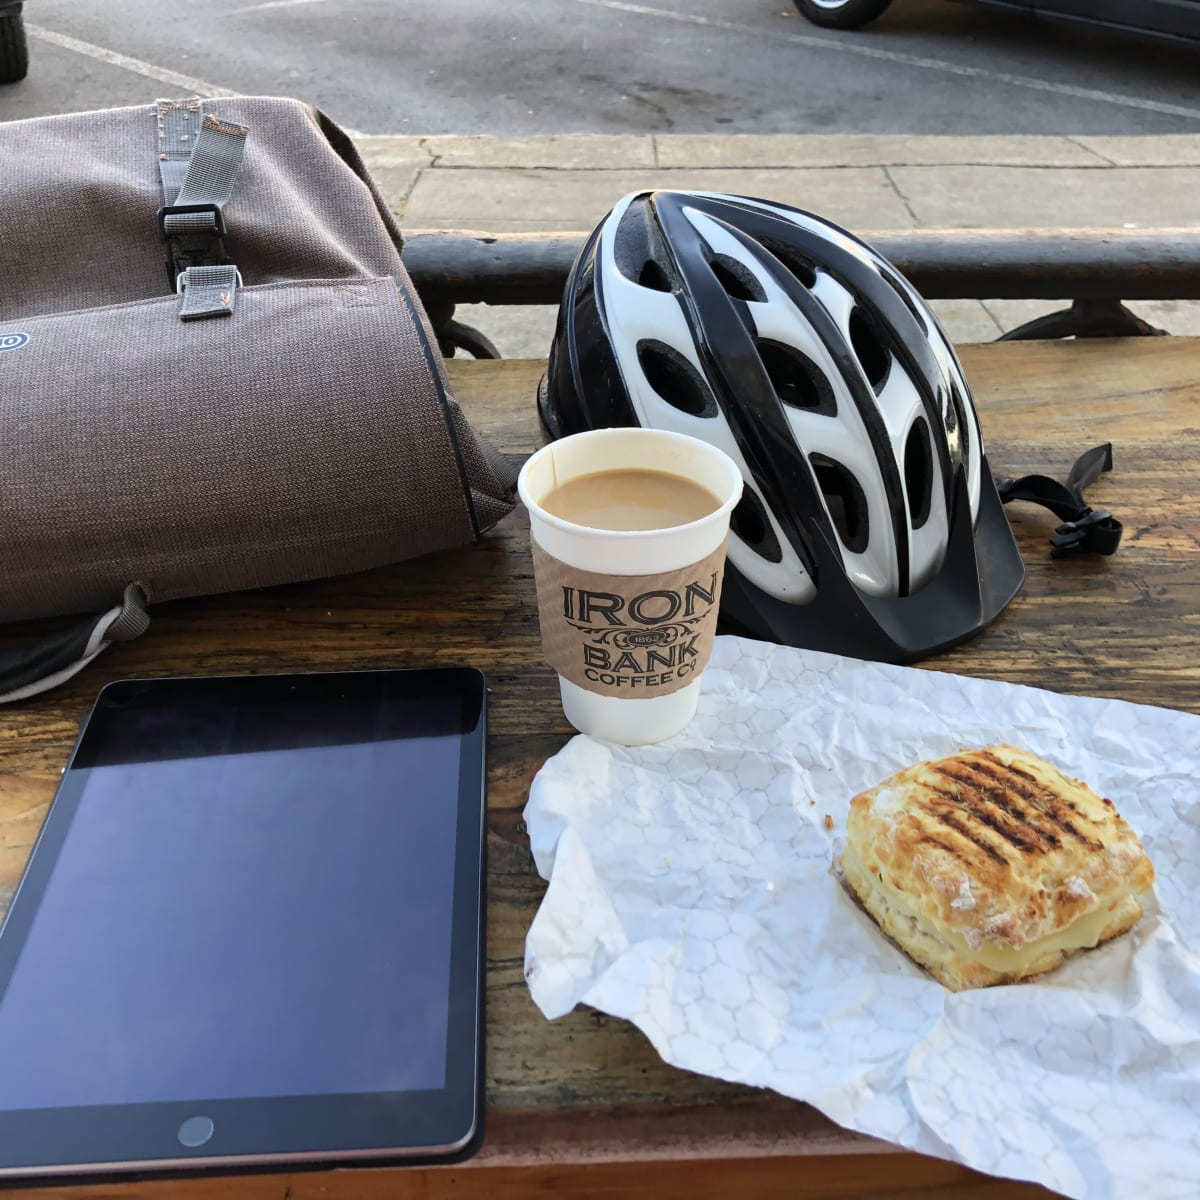 A photo of my bag, helmet, iPad, and coffee on an outdoor table.